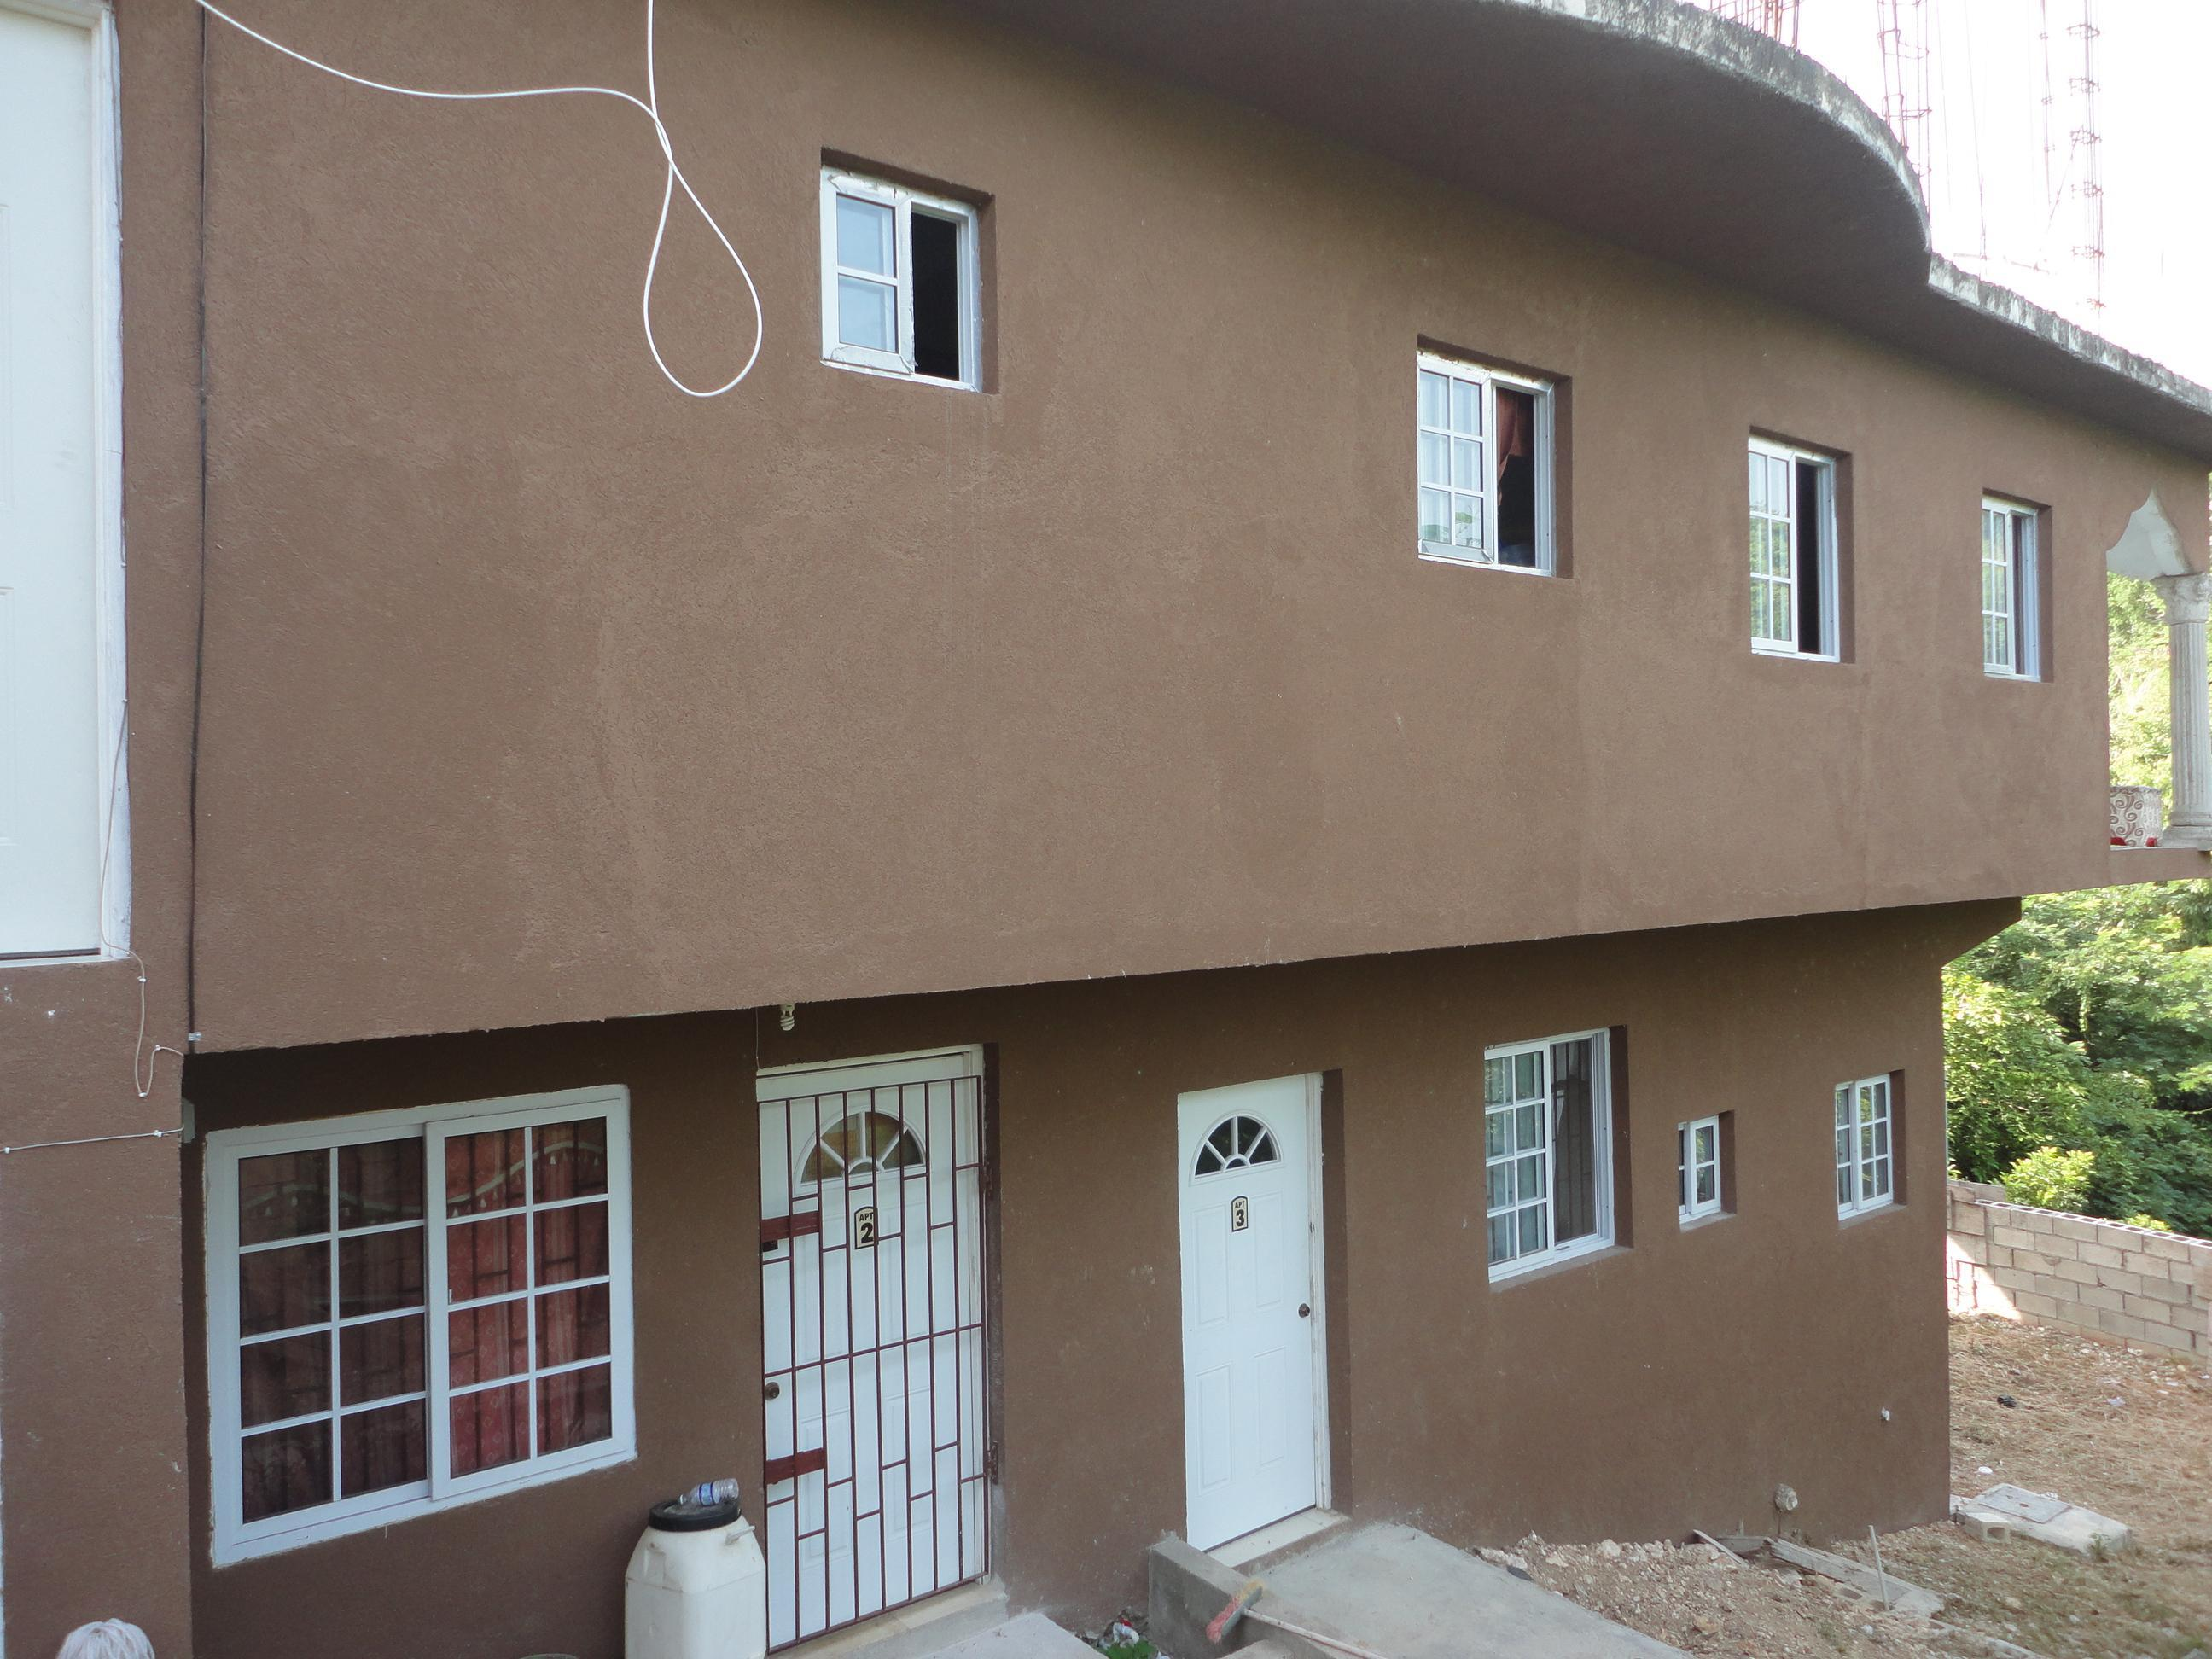 Good investment opportunity on foreclosed property